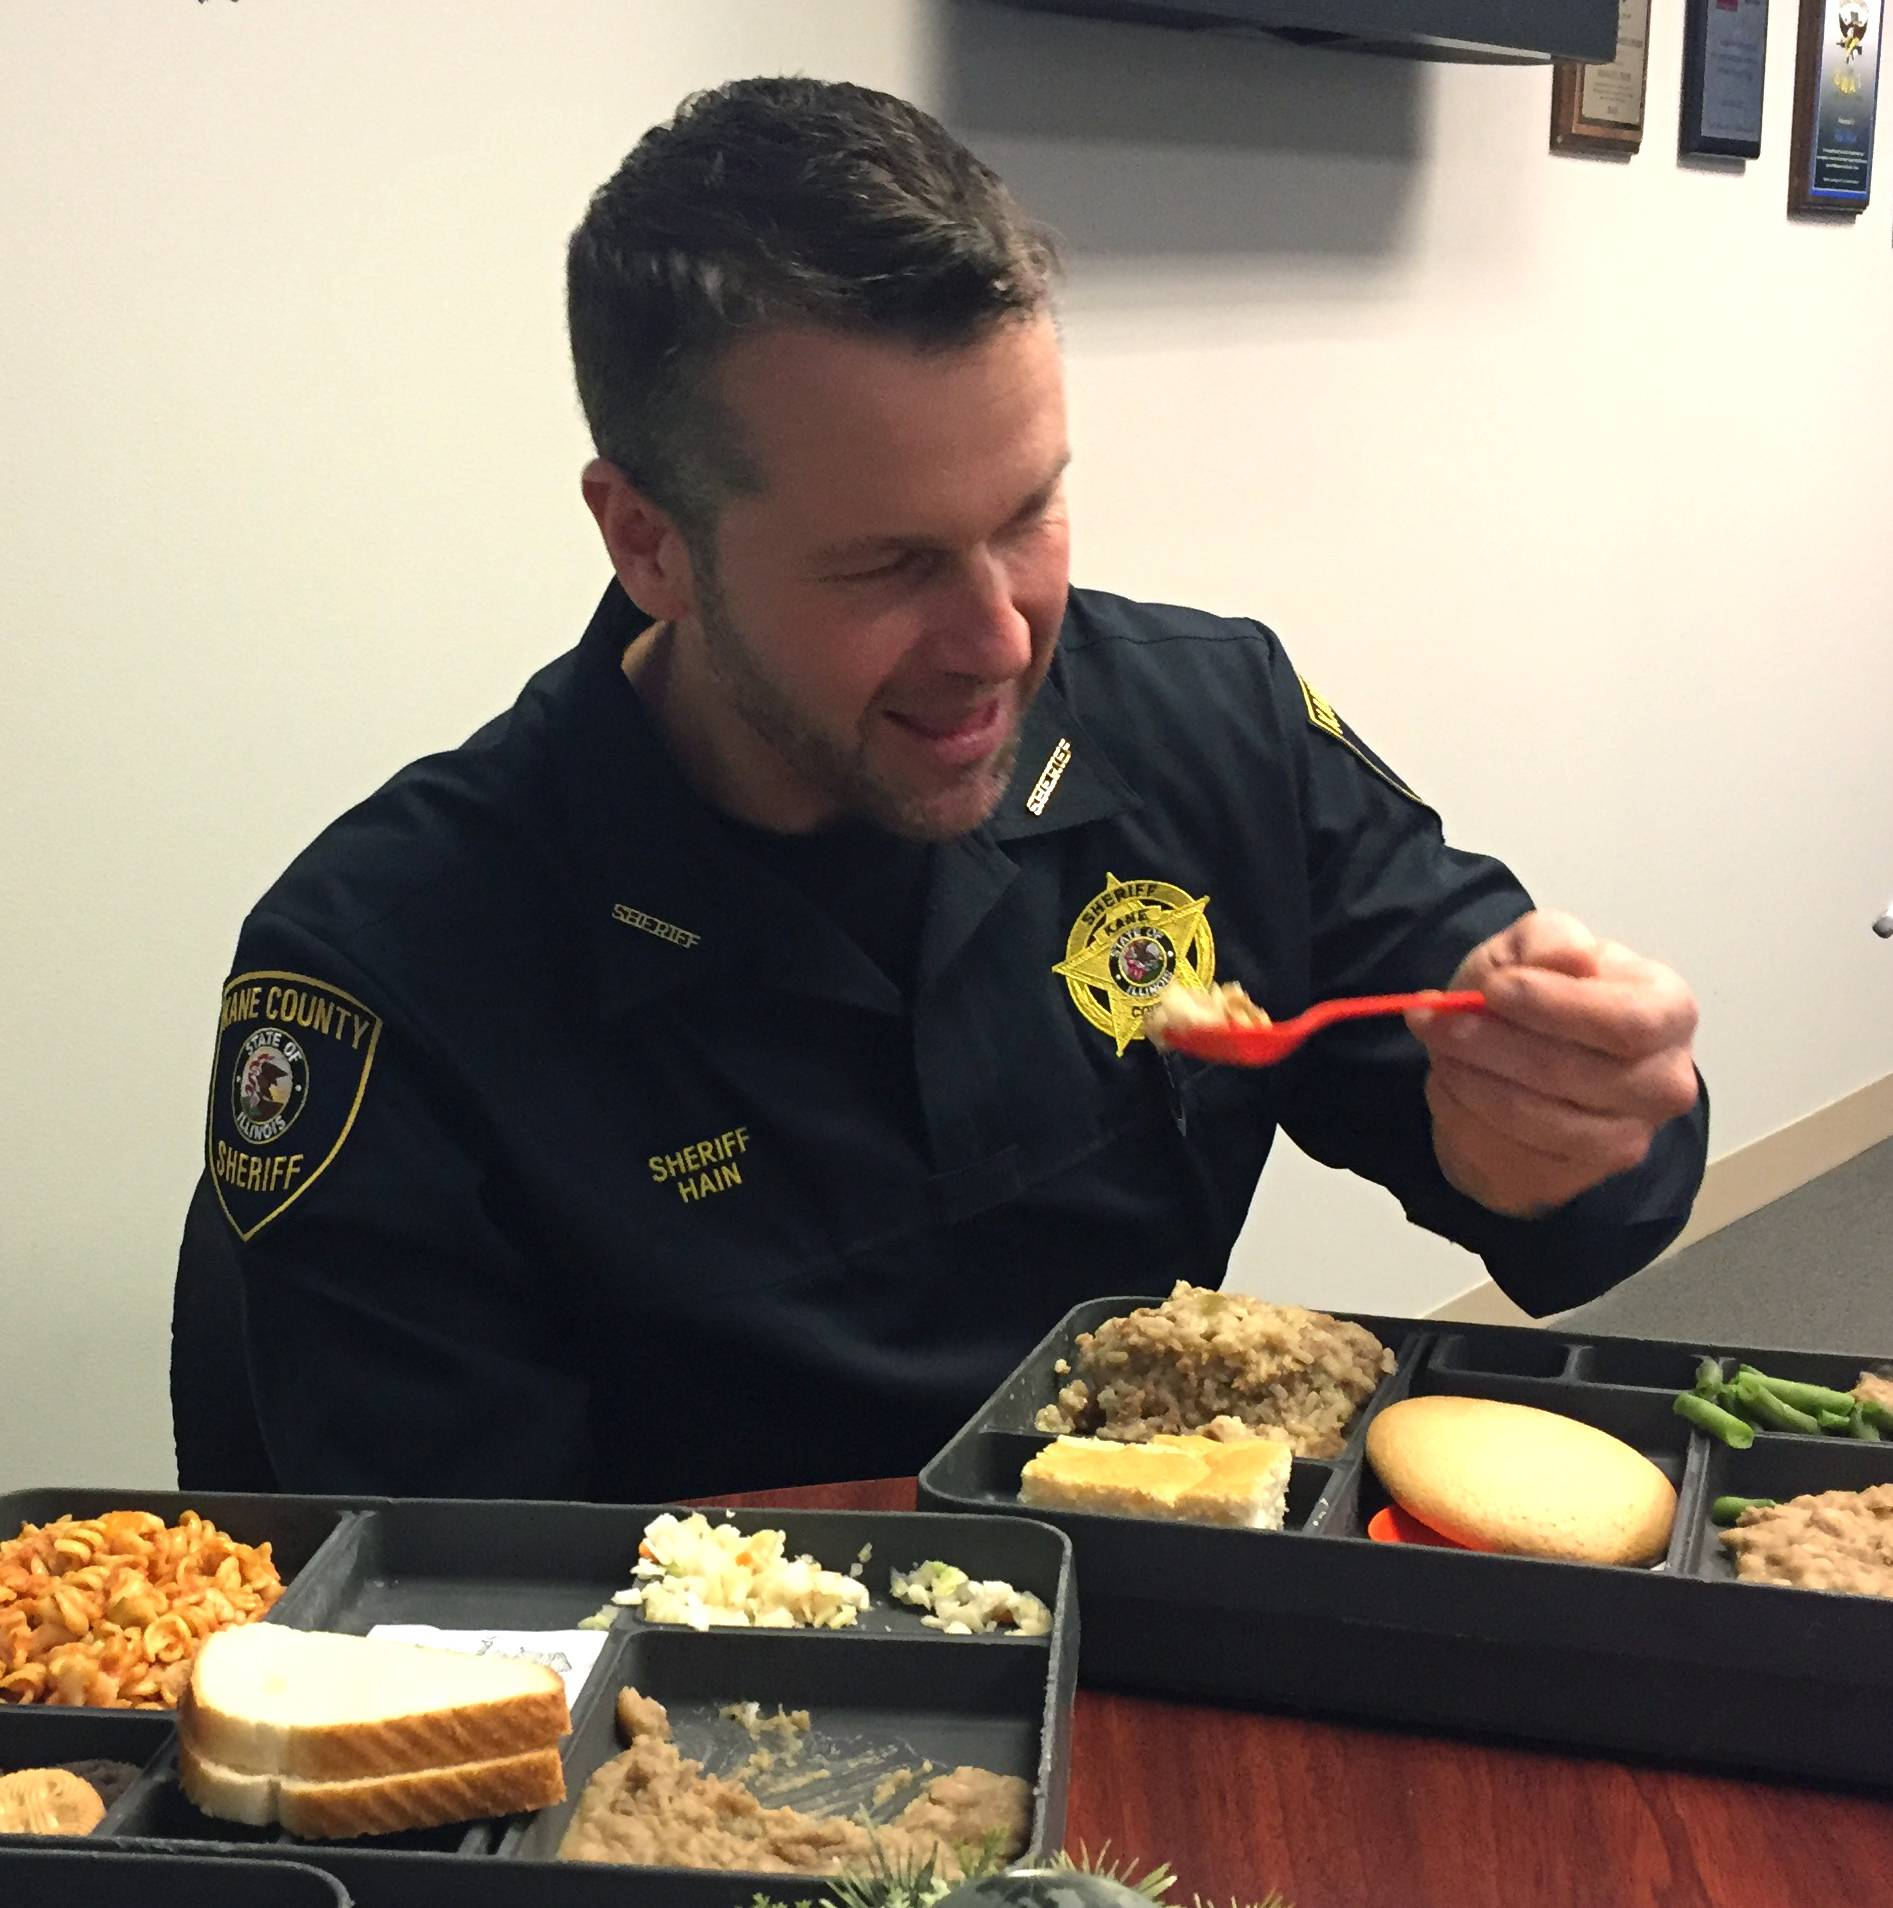 Kane County Sheriff Ron Hain samples lunches served to jail detainees before spending Wednesday night in a cell. He said he wants to determine the validity of complaints from some prisoners about food, clothing and temperatures inside the jail.